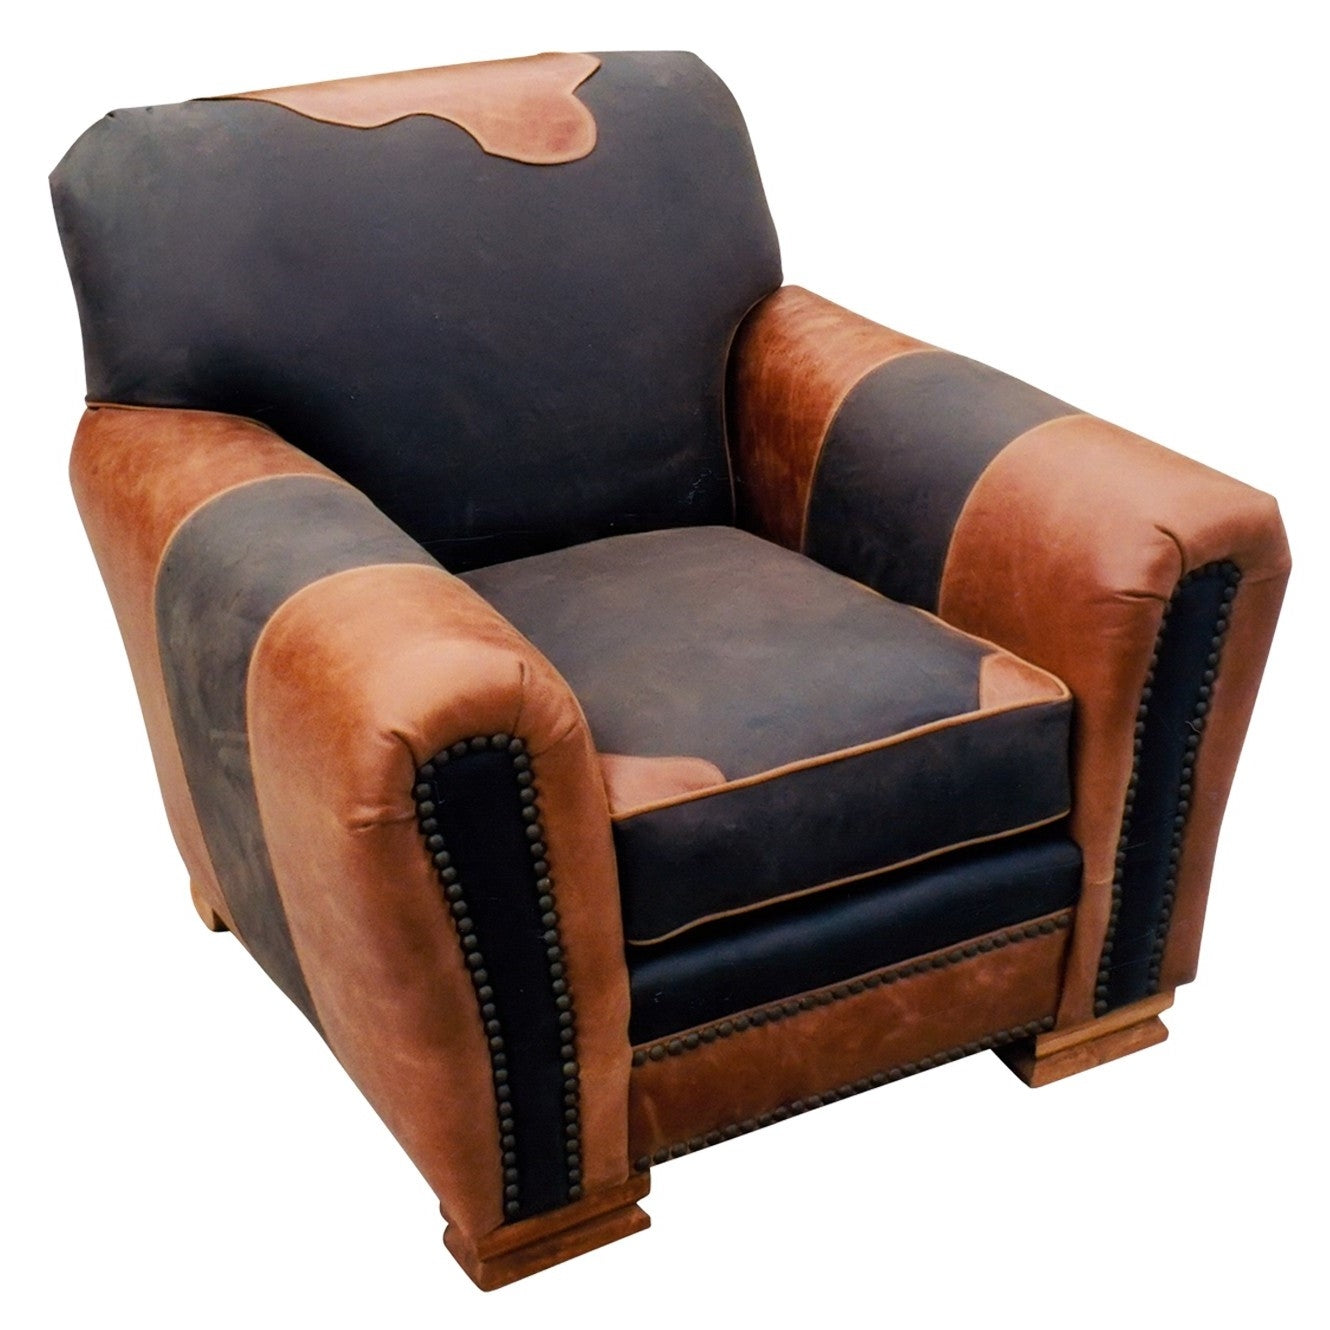 Kennedy Collection Leather Lodge Chair chairs, kennedy collection, leather